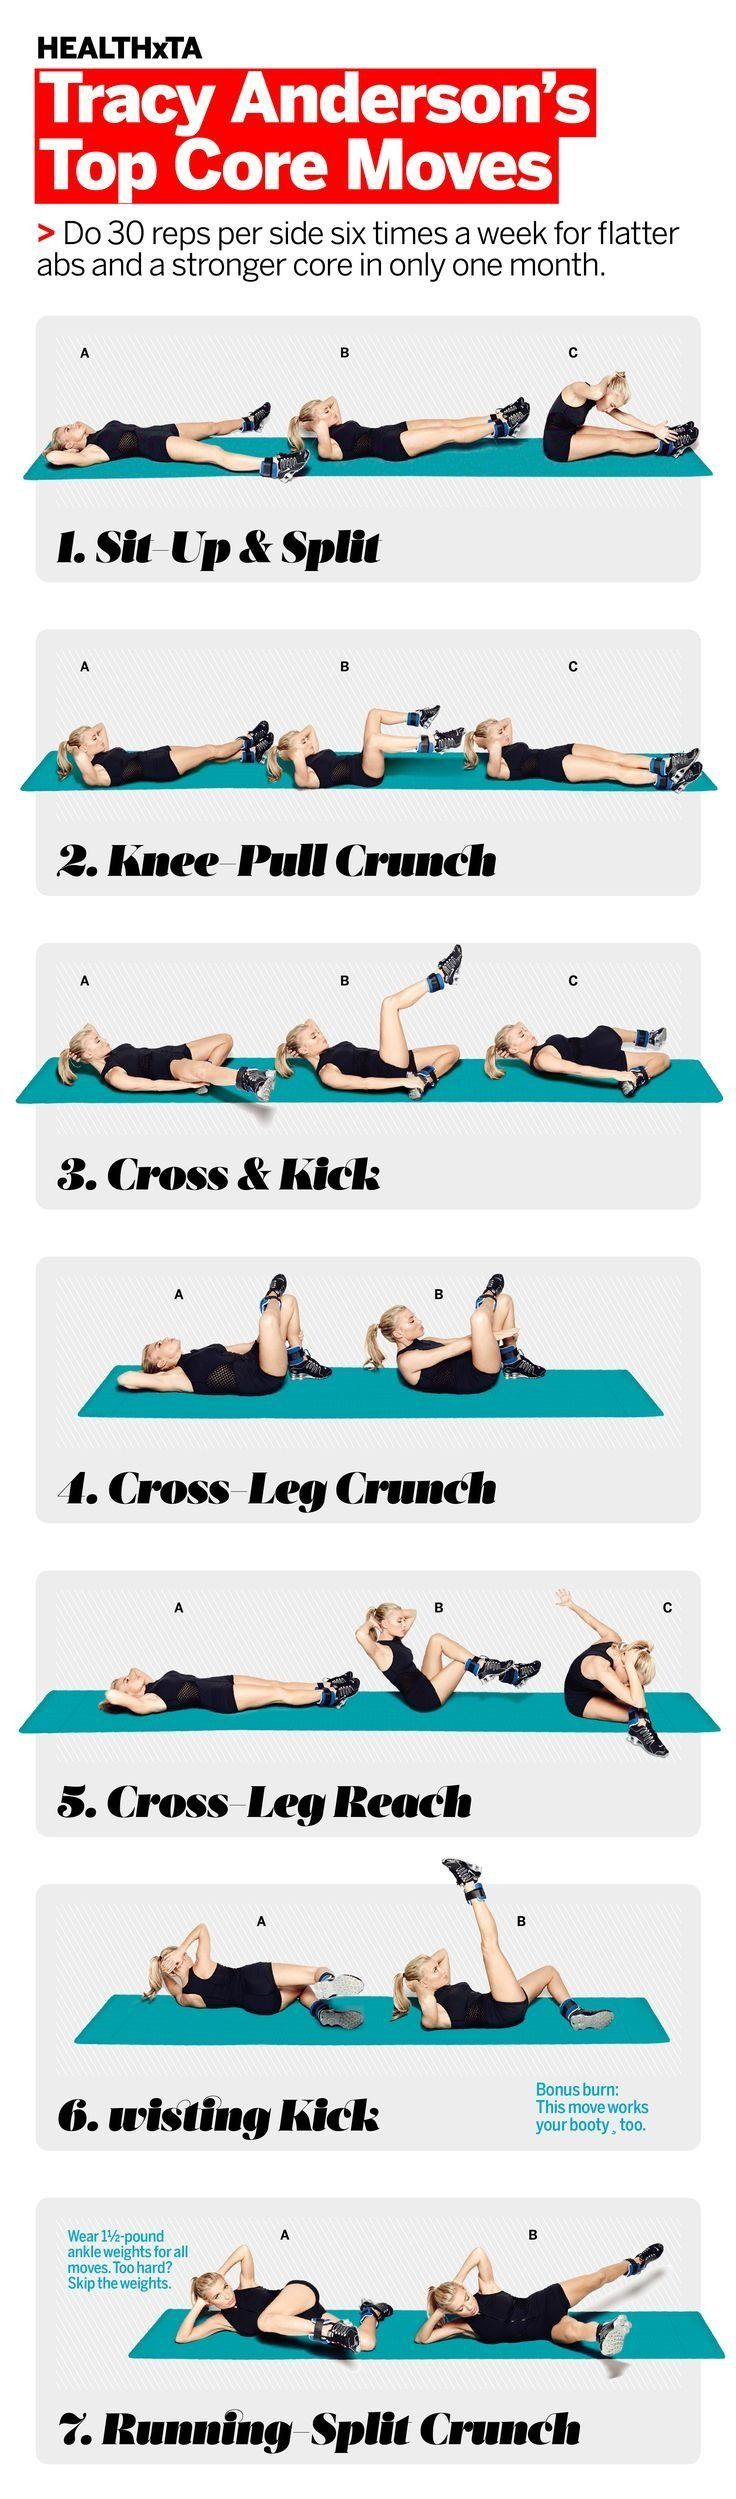 Tracy Anderson's Top Exercises for Flatter Abs and a Stronger Core: This seven-move series, created exclusively for Health readers by Tracy, is part of our 30-Day Core Challenge: Transform Your Butt, Back & Abs. It promises to do wonders for your waistlin